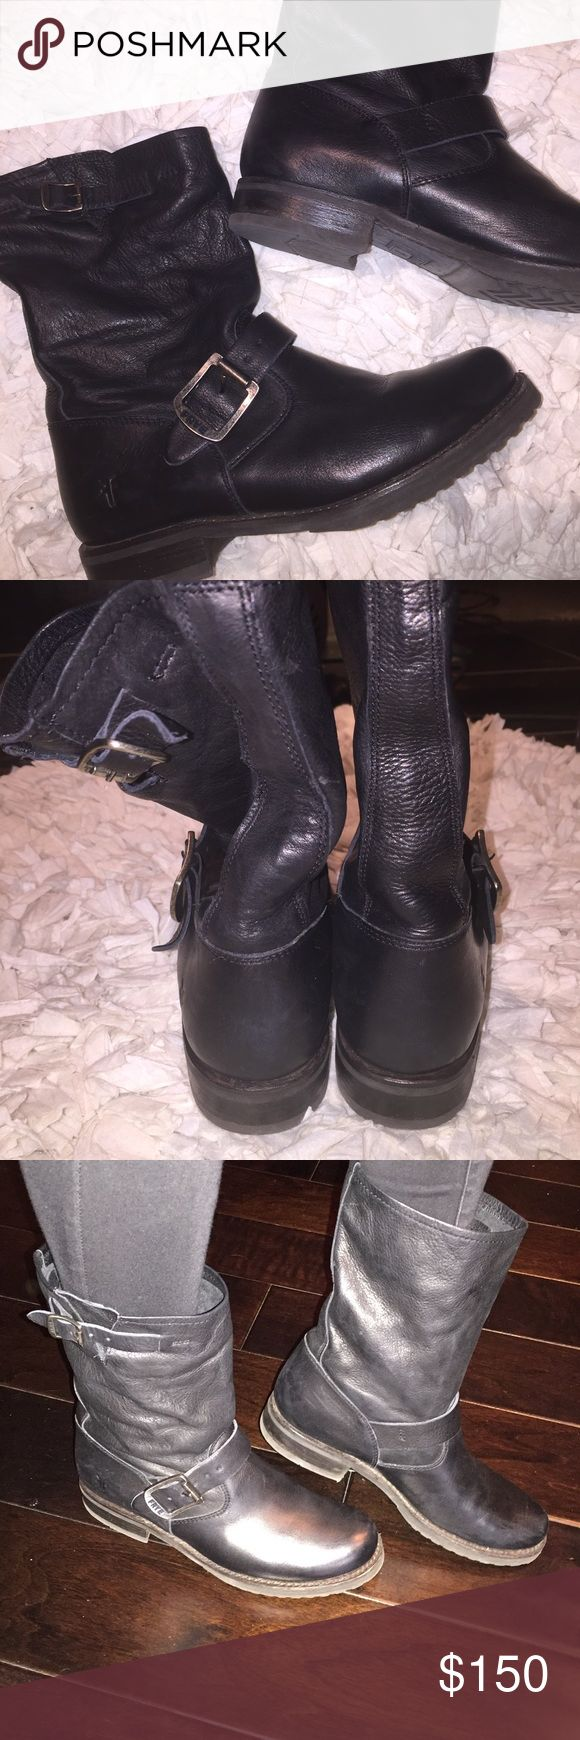 Frye moto boots sz6 Frye leather black moto style booties. Worn only twice. Sz6 Frye Shoes Ankle Boots & Booties